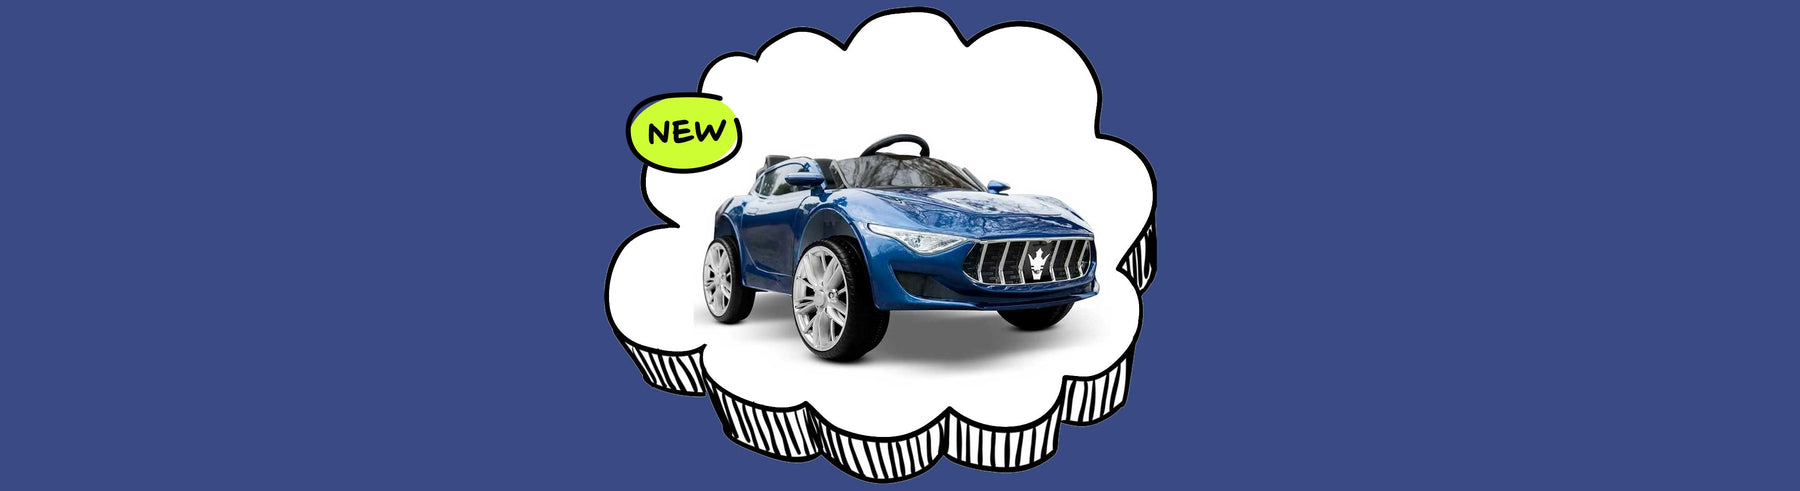 Maserati Inspired Kids Ride on Car with Remote Control